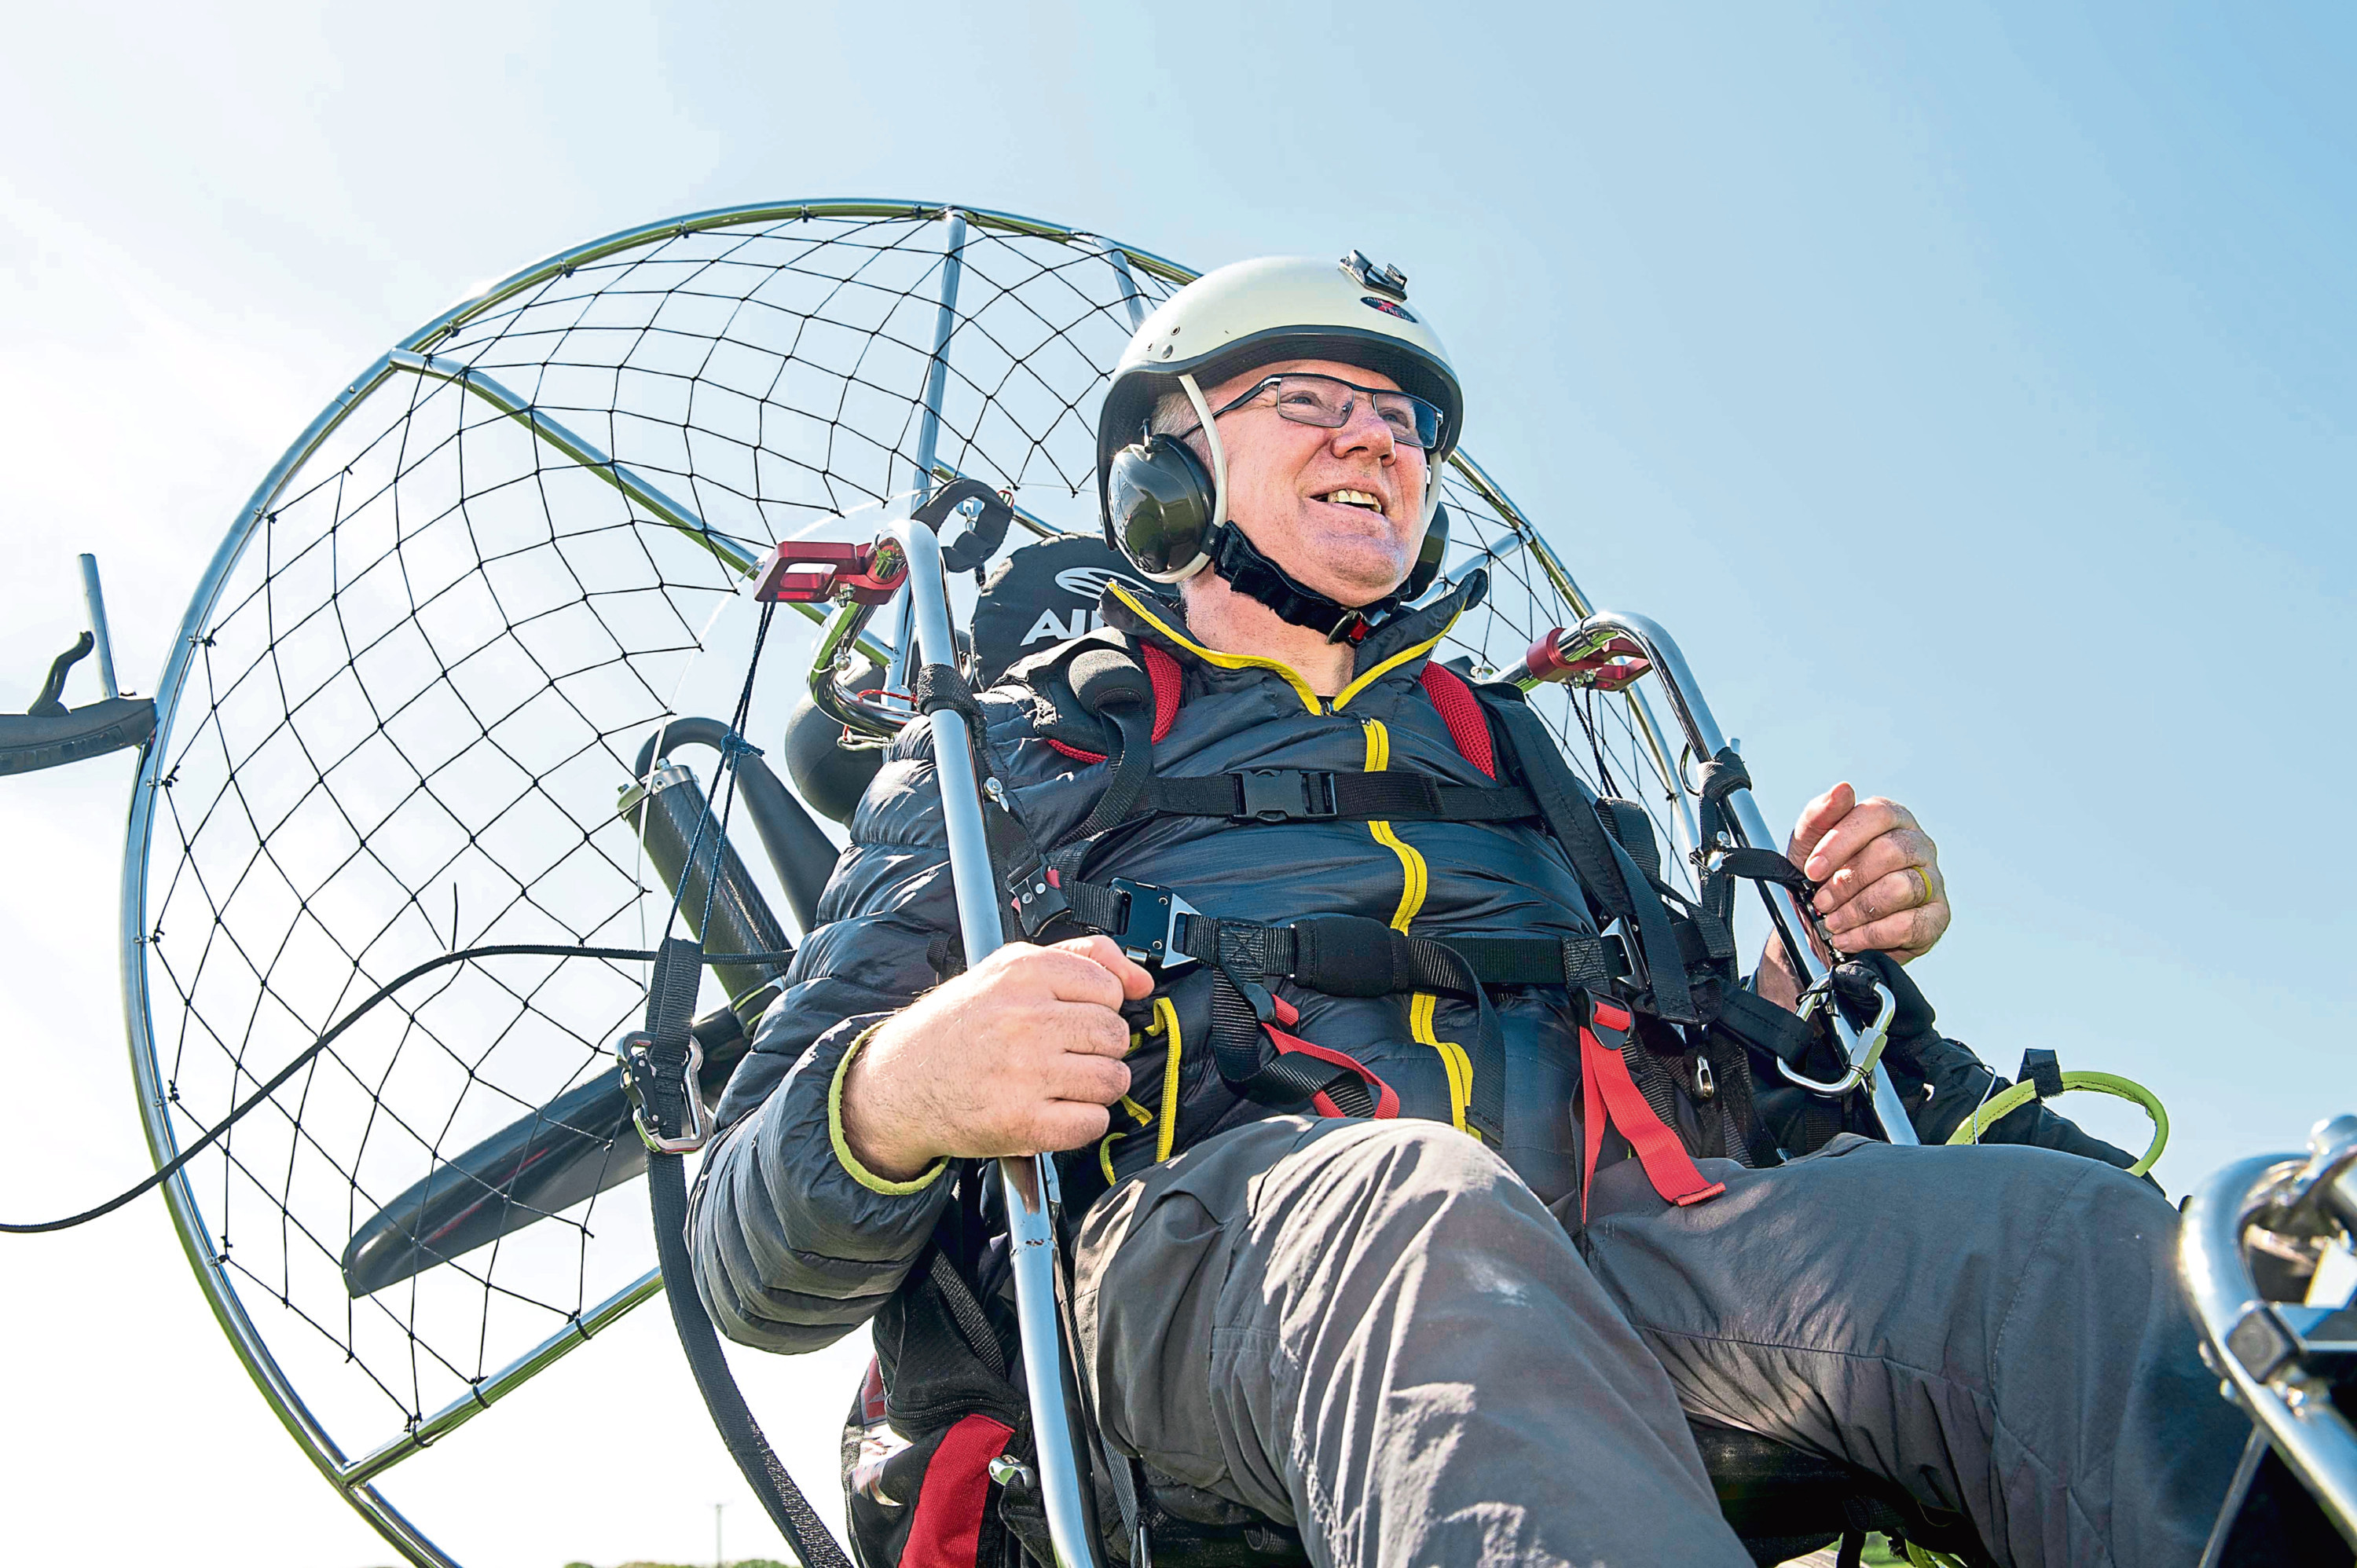 Intrepid adventurer John is back in the skies after breaking his